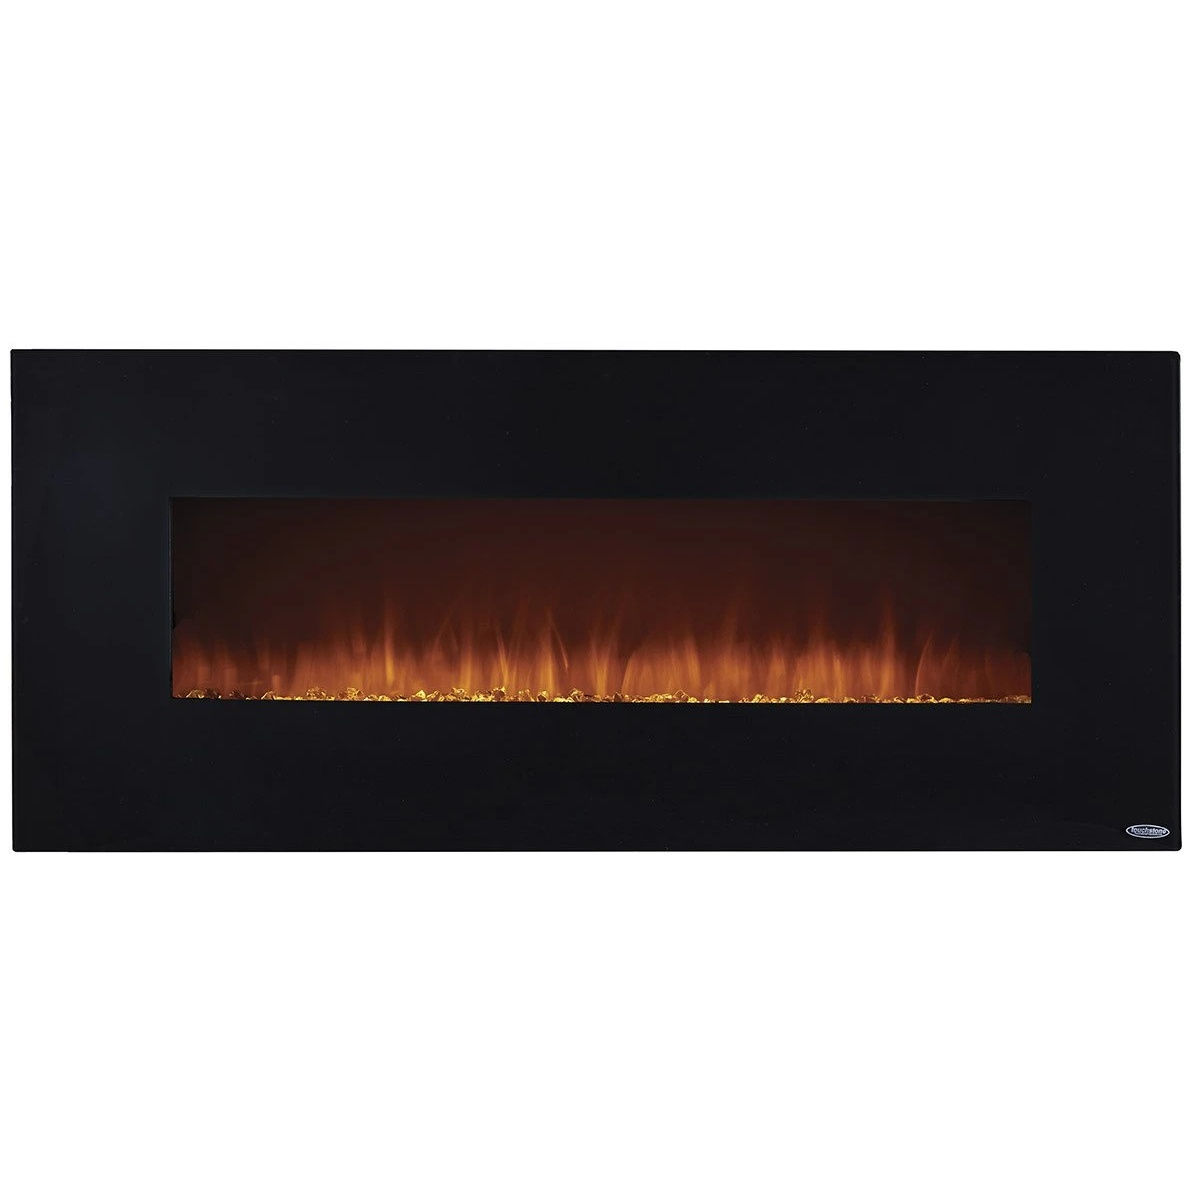 touchstone onyx electric fireplace with black surround trim